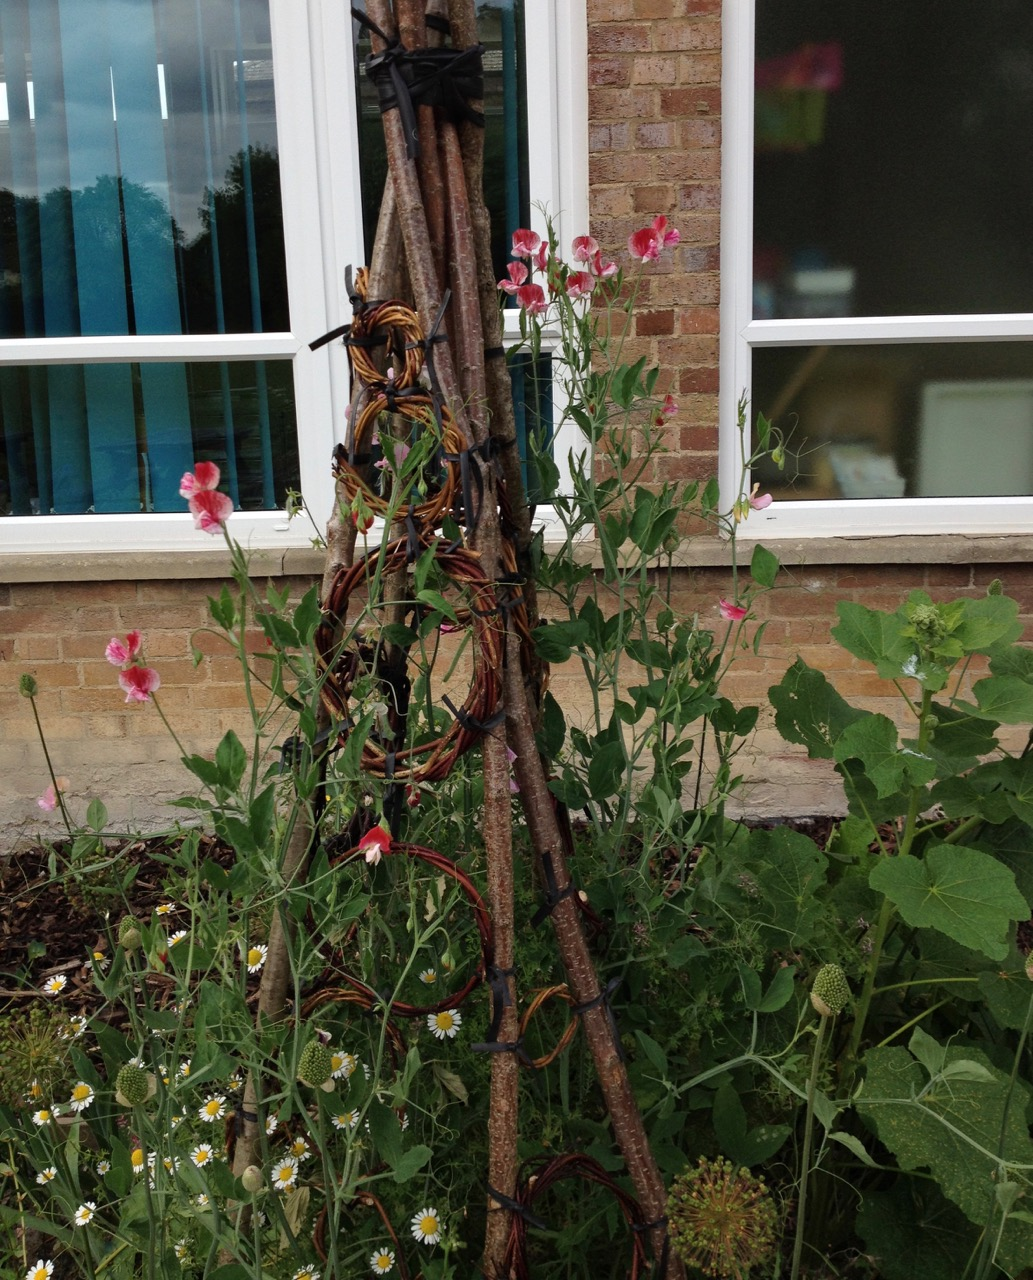 June 2018: Sweet peas by the staff room. Wigwam made by school students, with a bit of help. Bicycle inner tube ties didn't last very well in the sun.